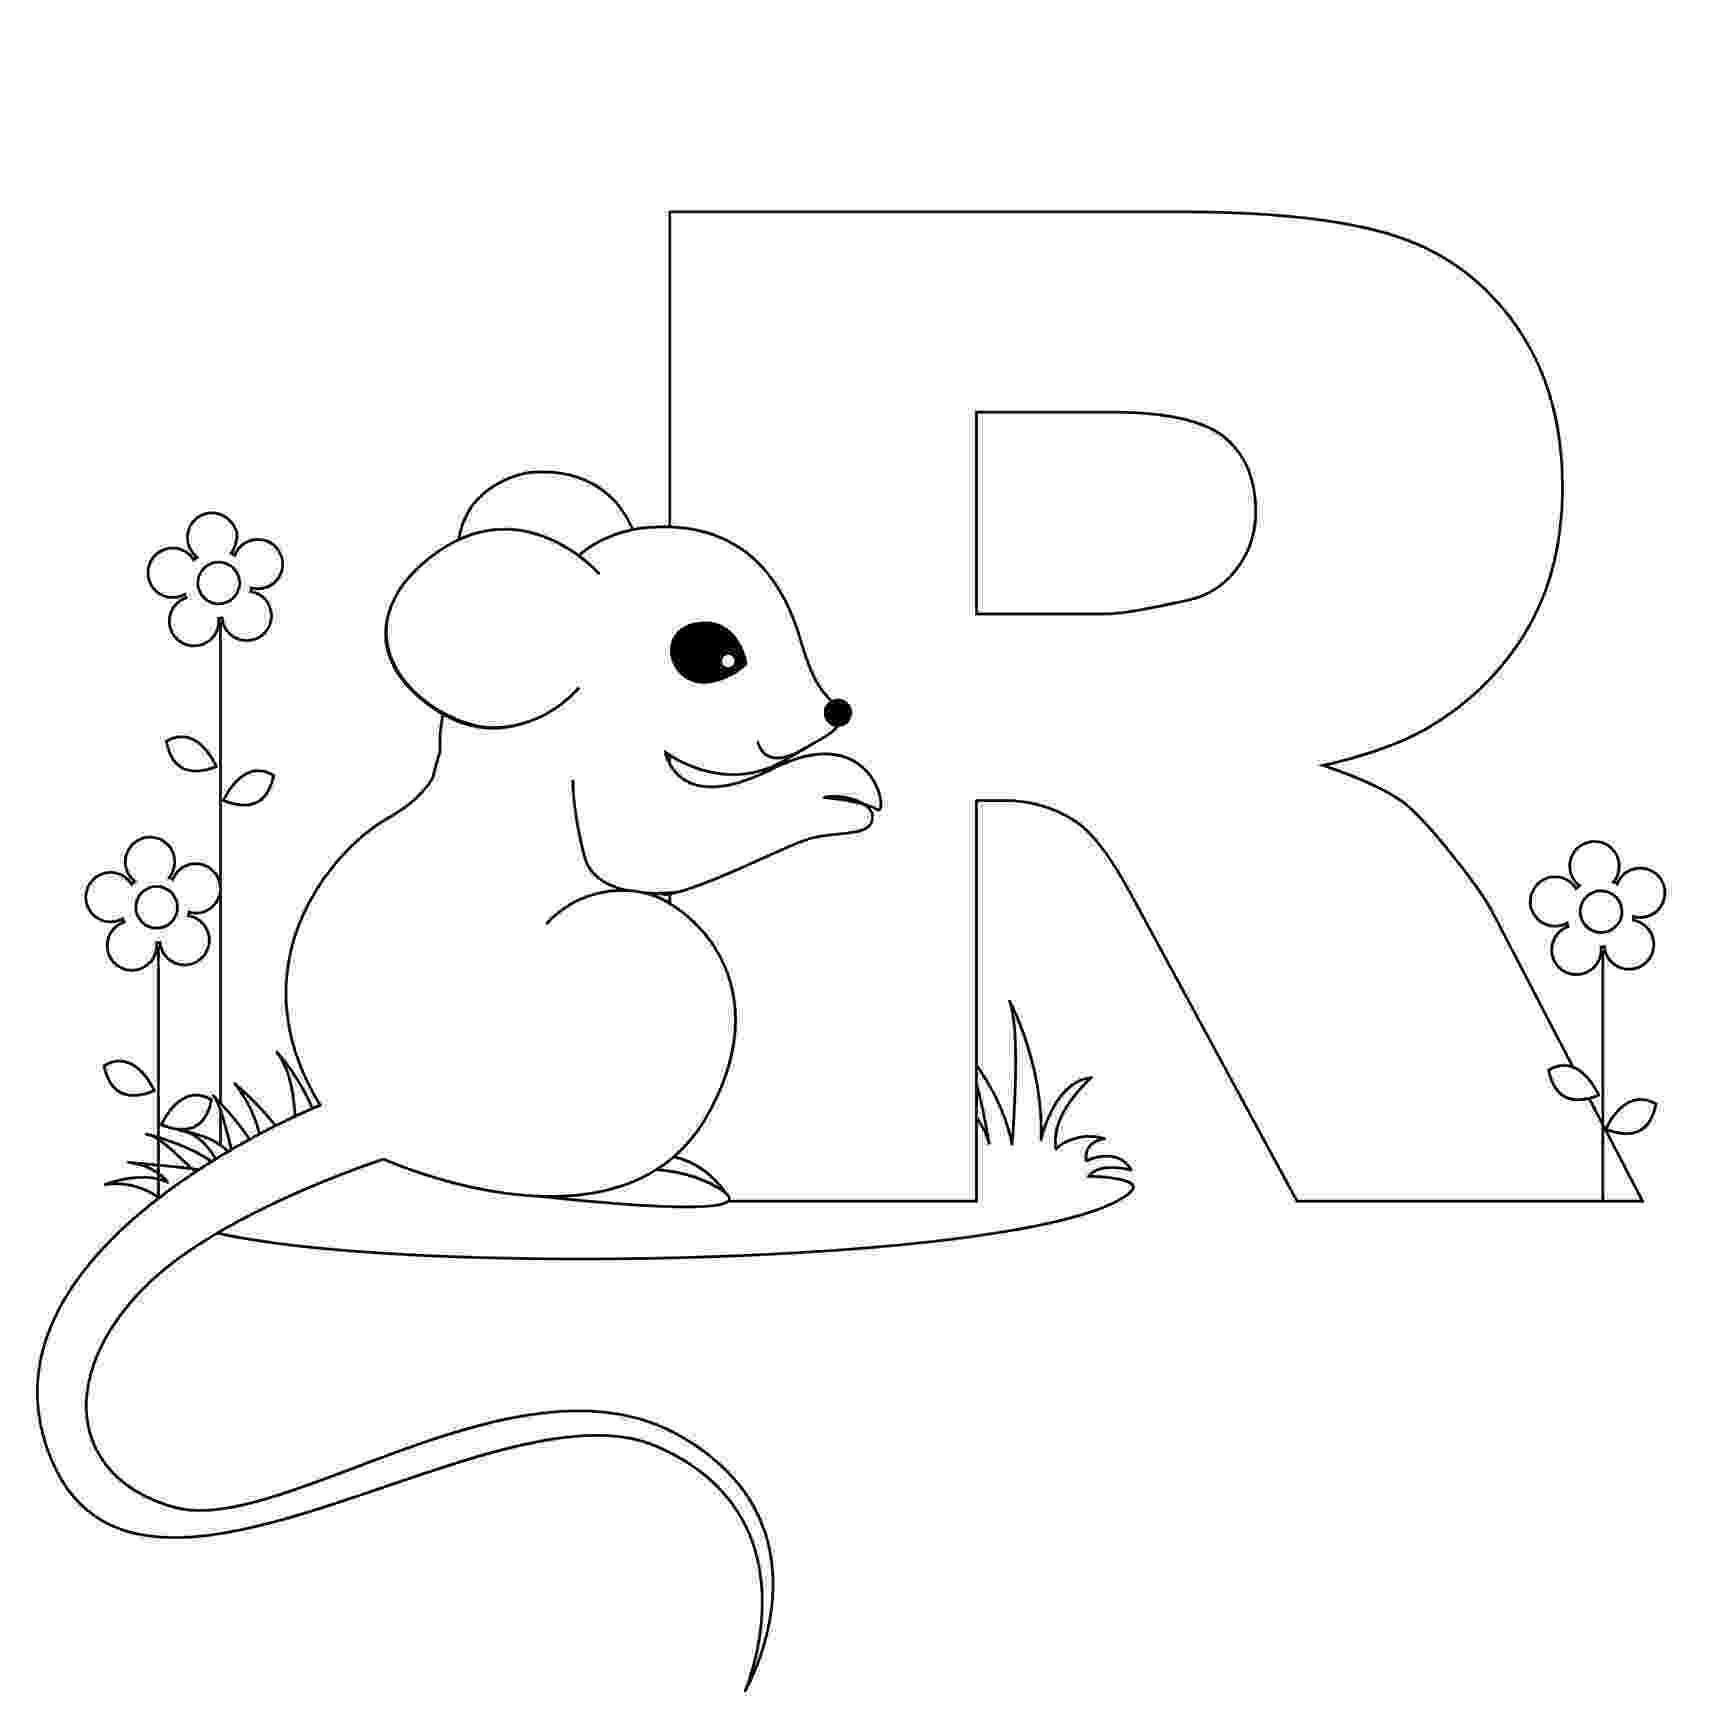 coloring pages of letters free printable alphabet coloring pages for kids best of letters coloring pages